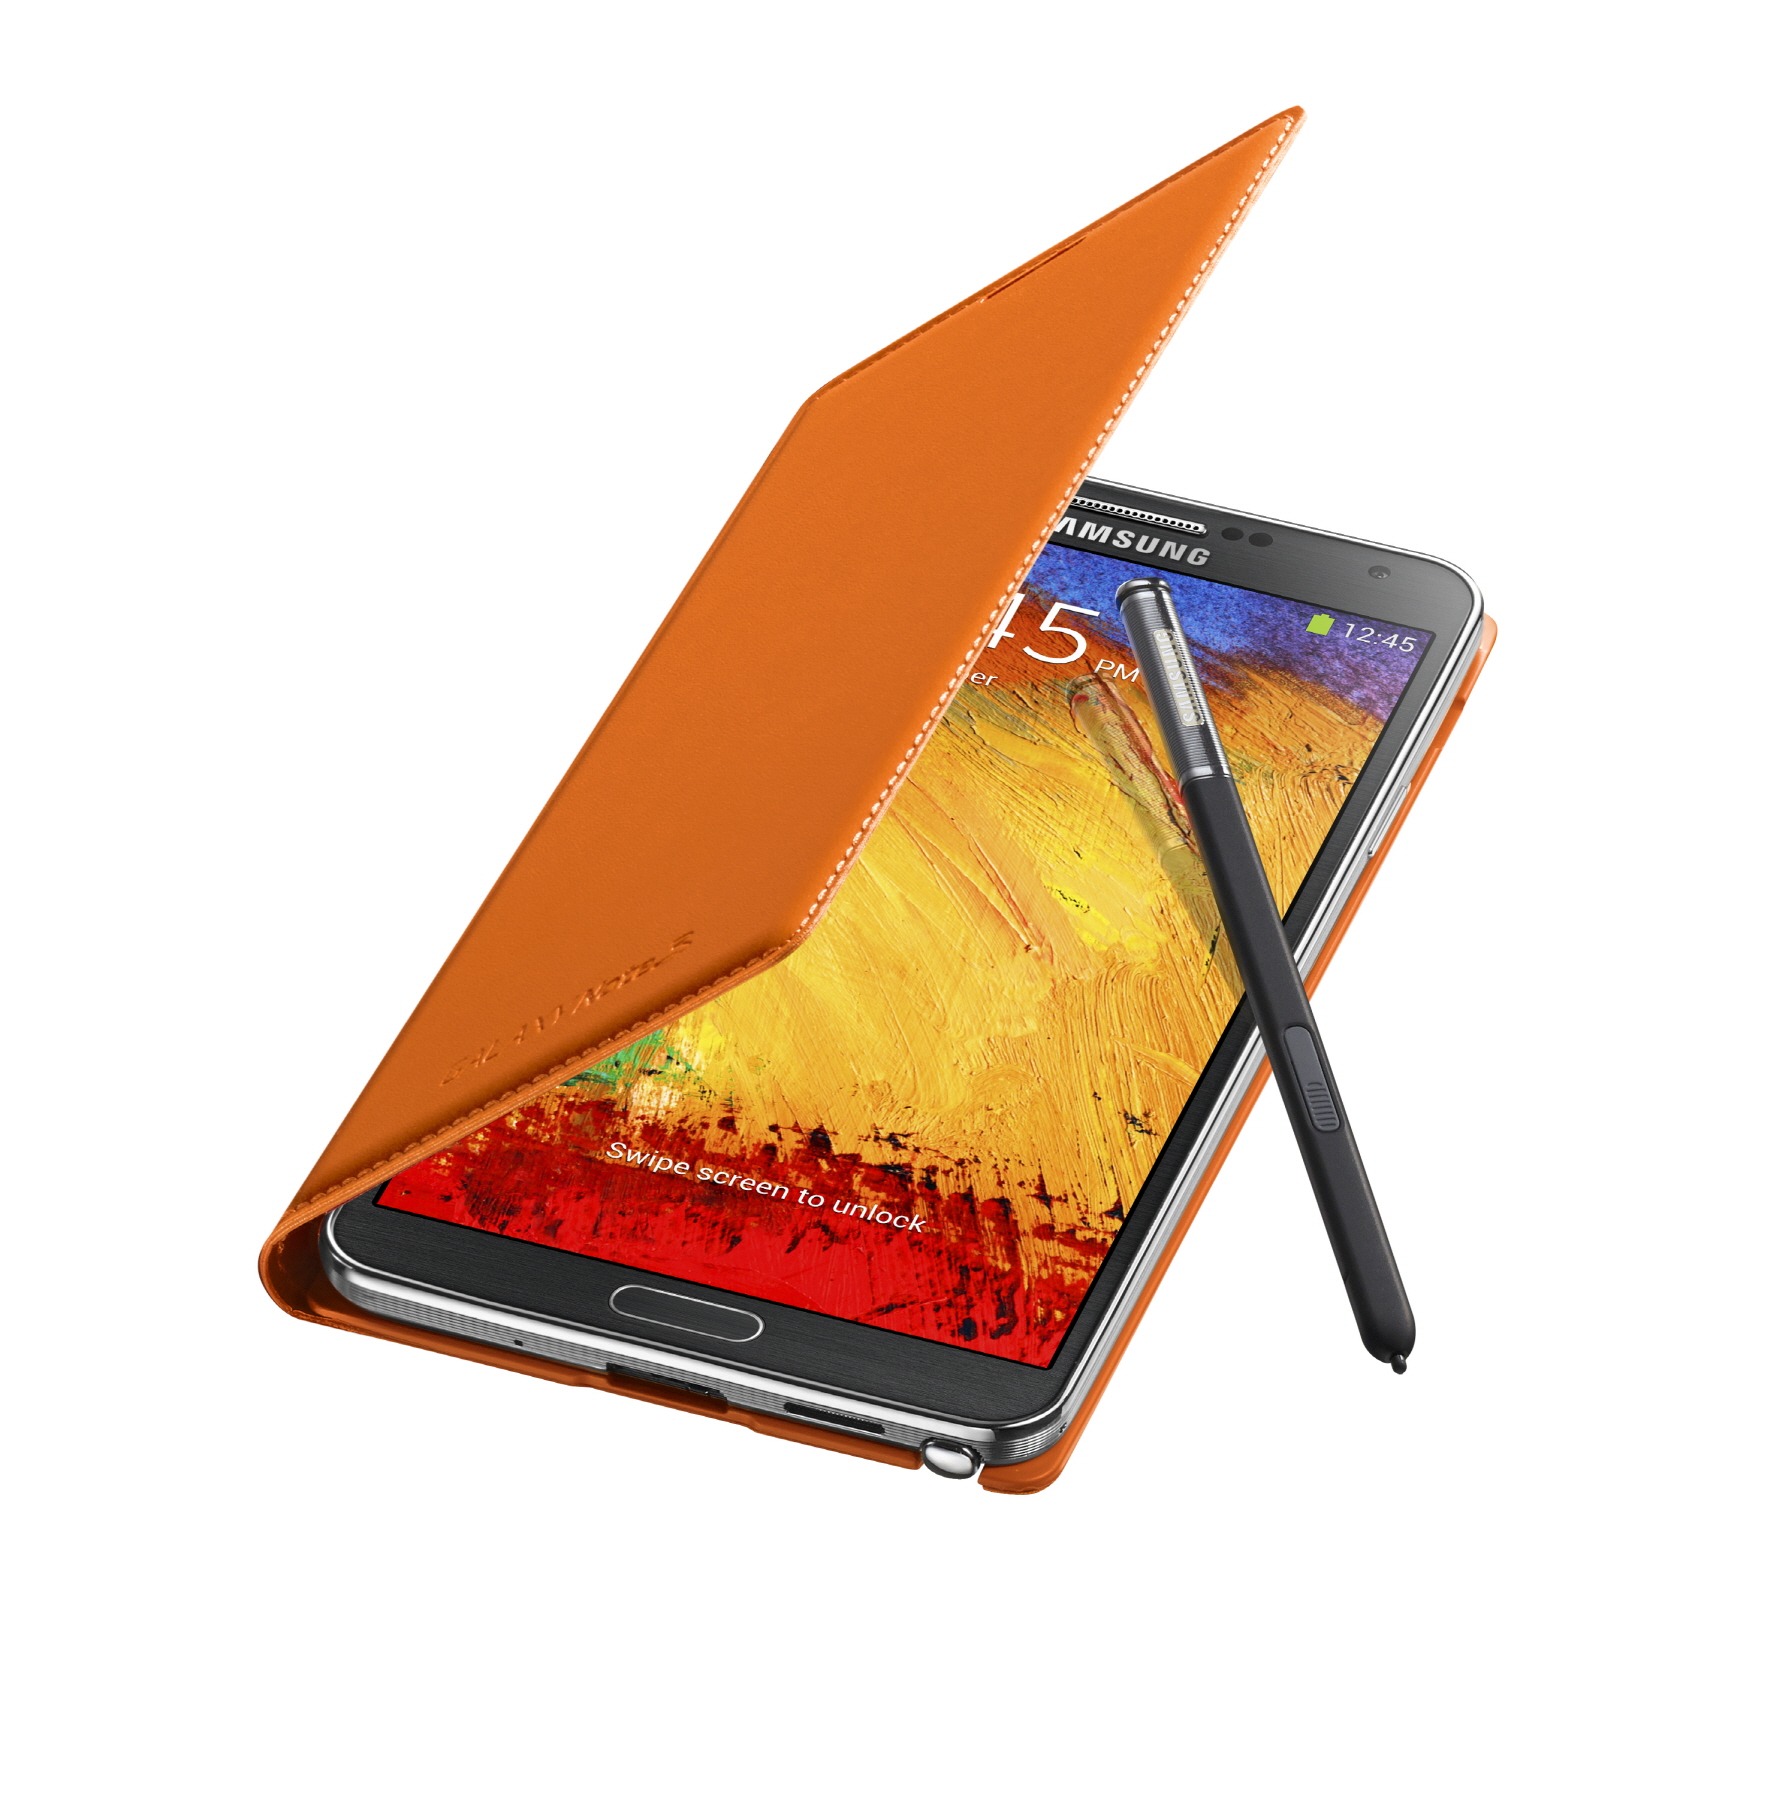 Galaxy Note3 FlipCover_004_Open Pen_Wild Orange